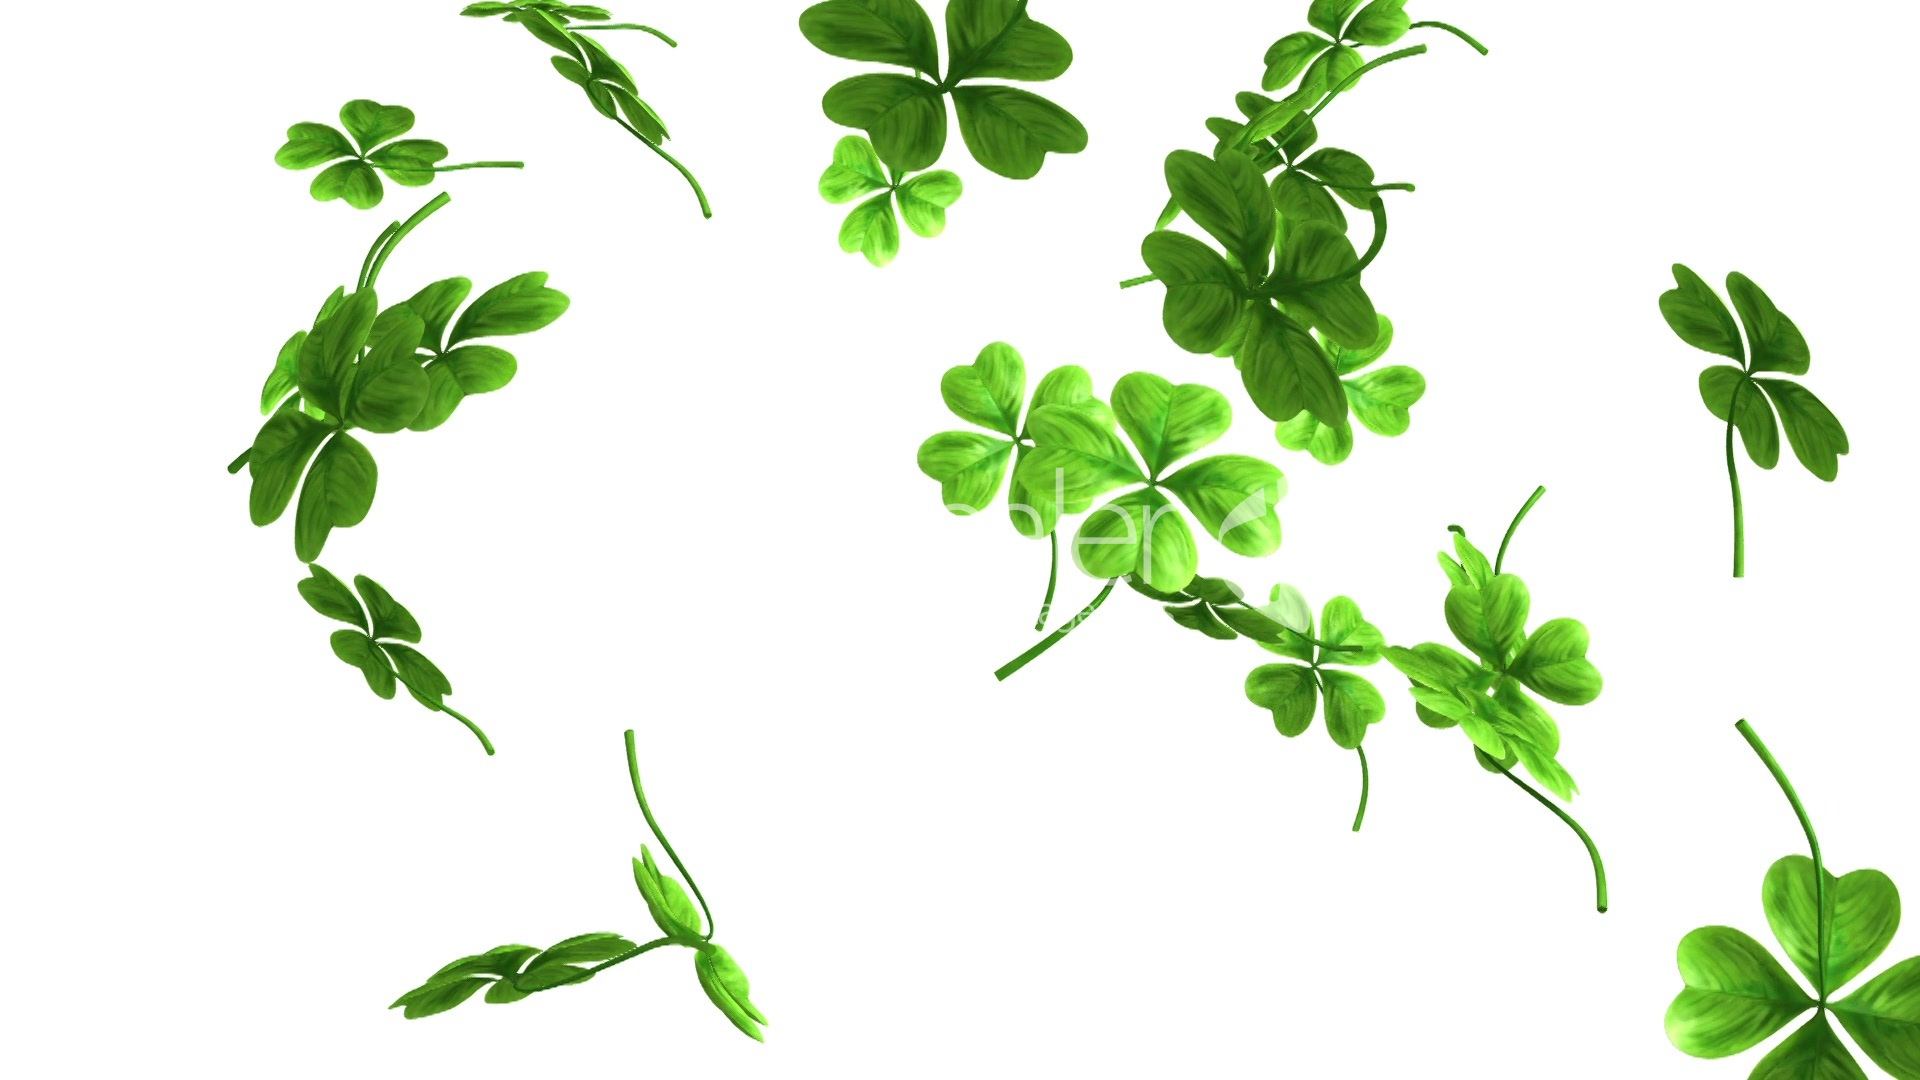 Shamrock Background Wallpapers 1920x1080